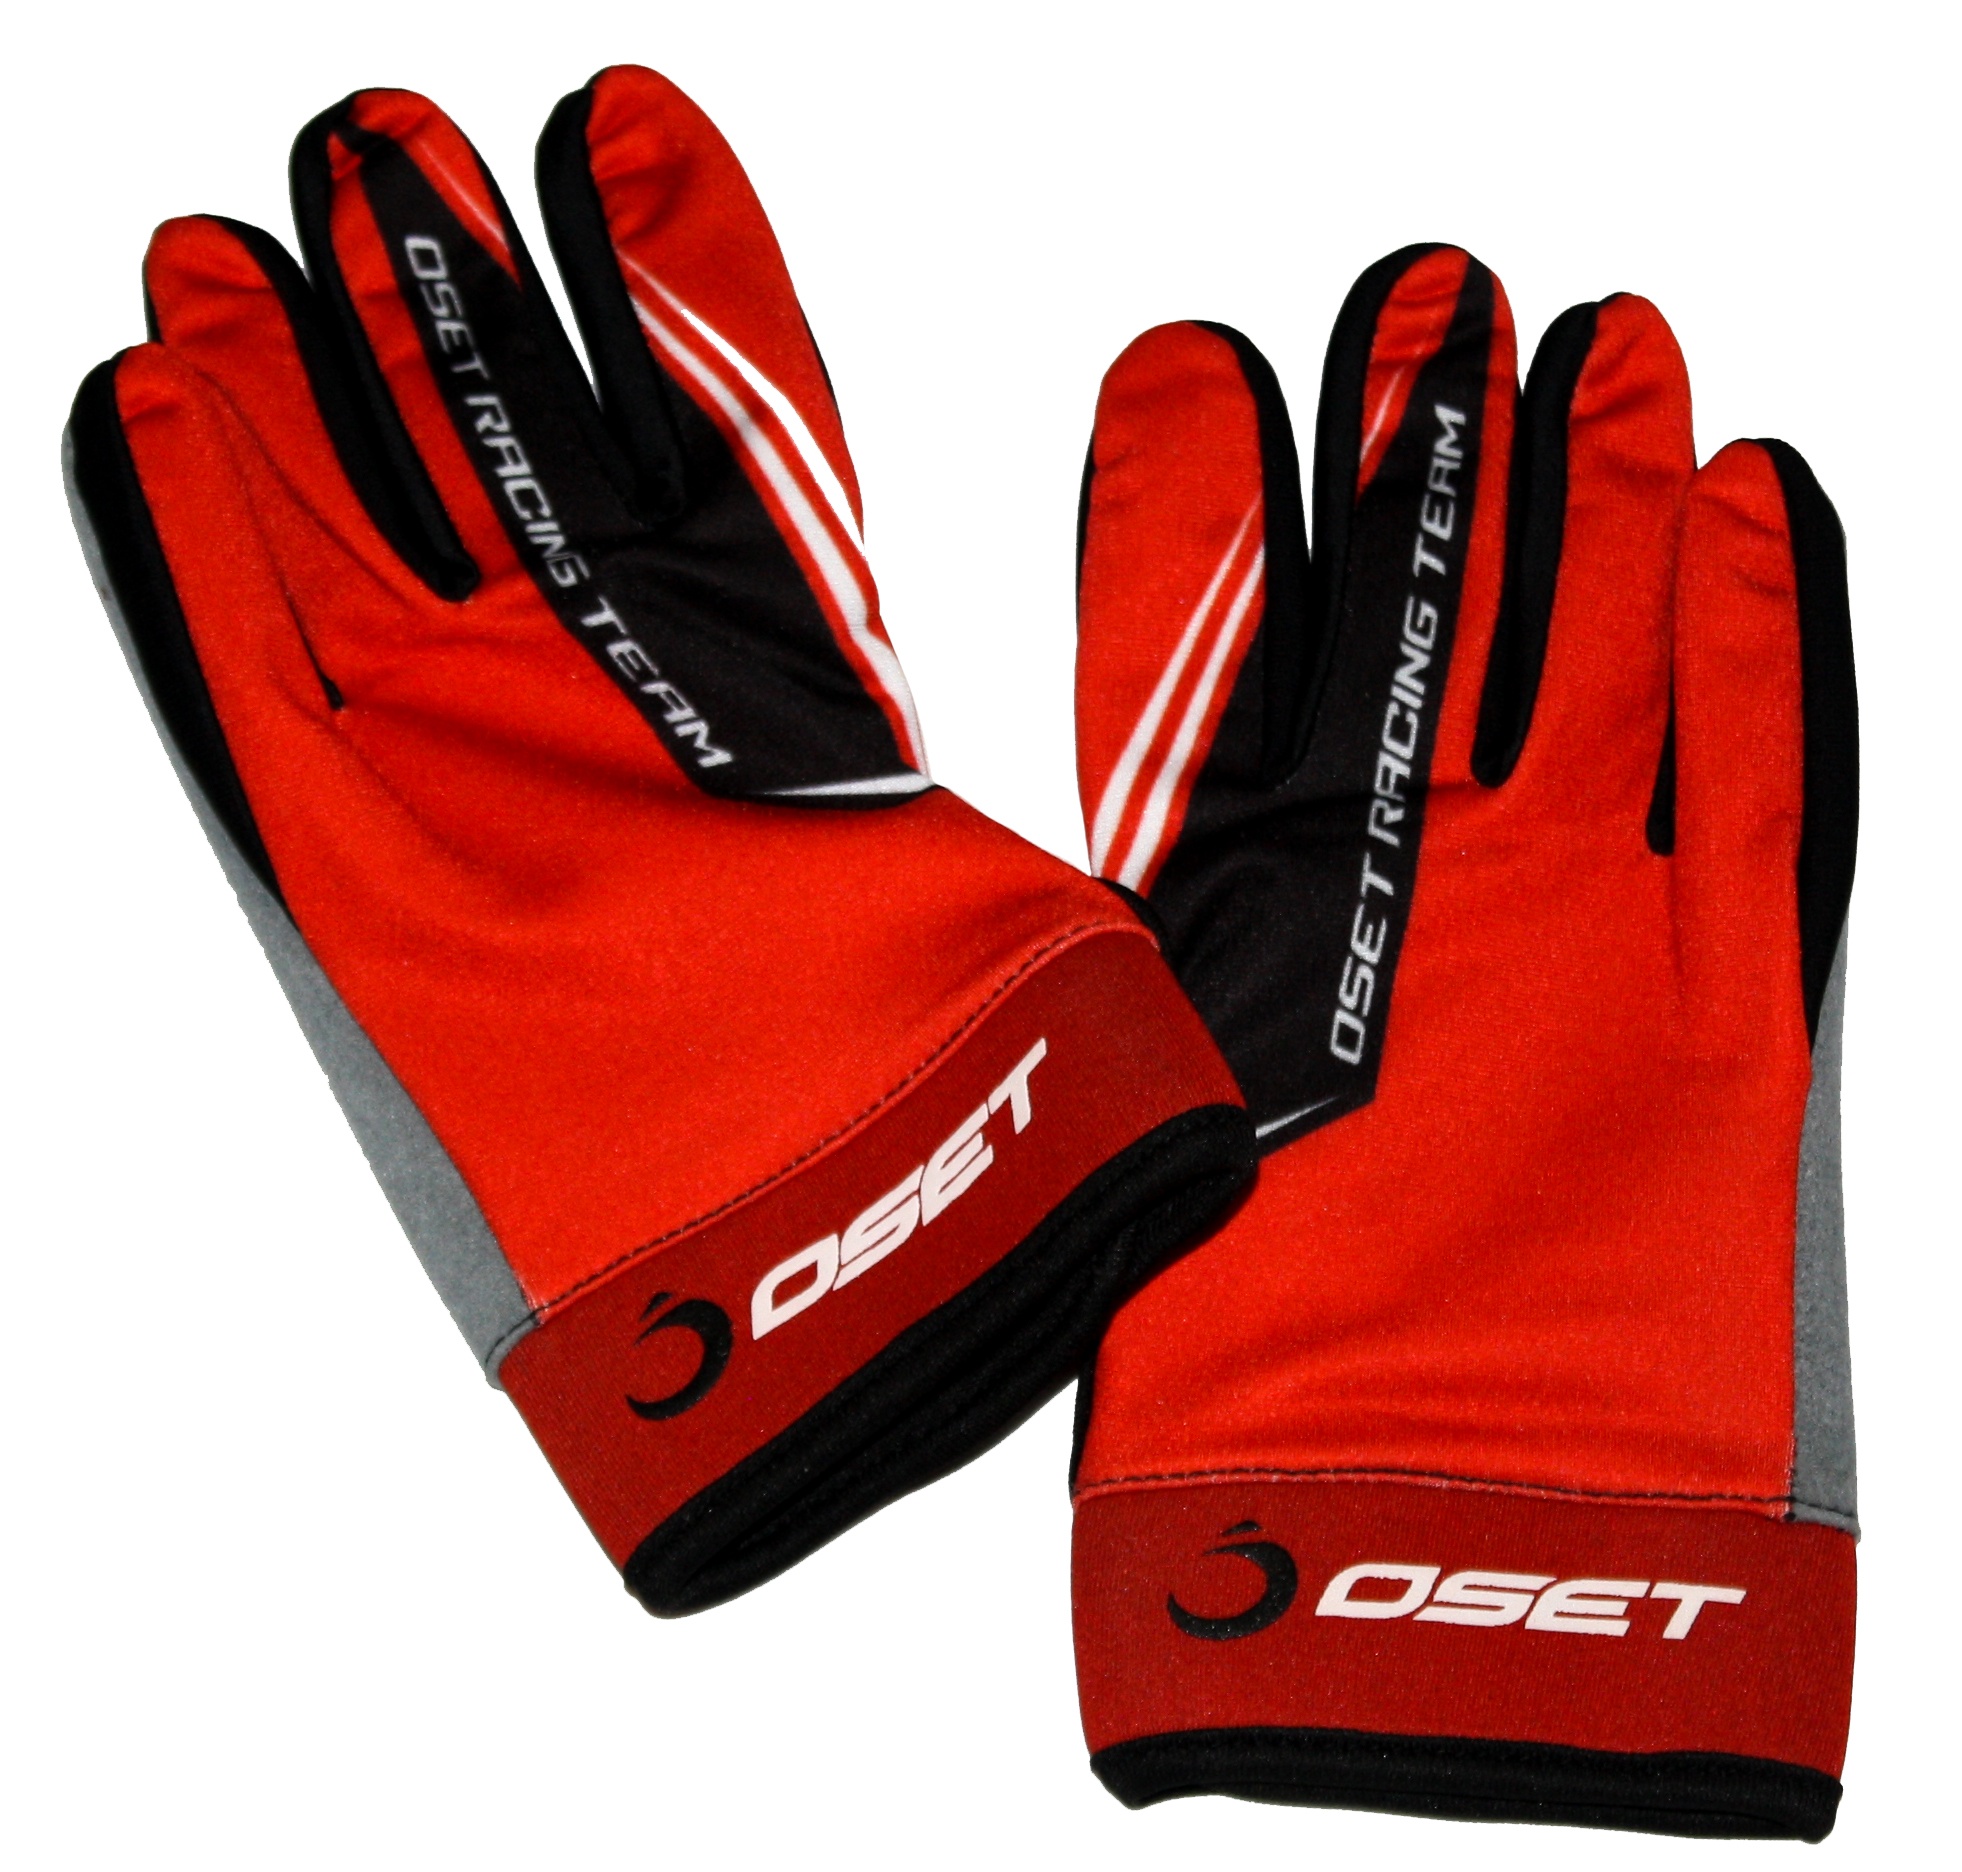 Oset Elite Riding Glove Black/Red